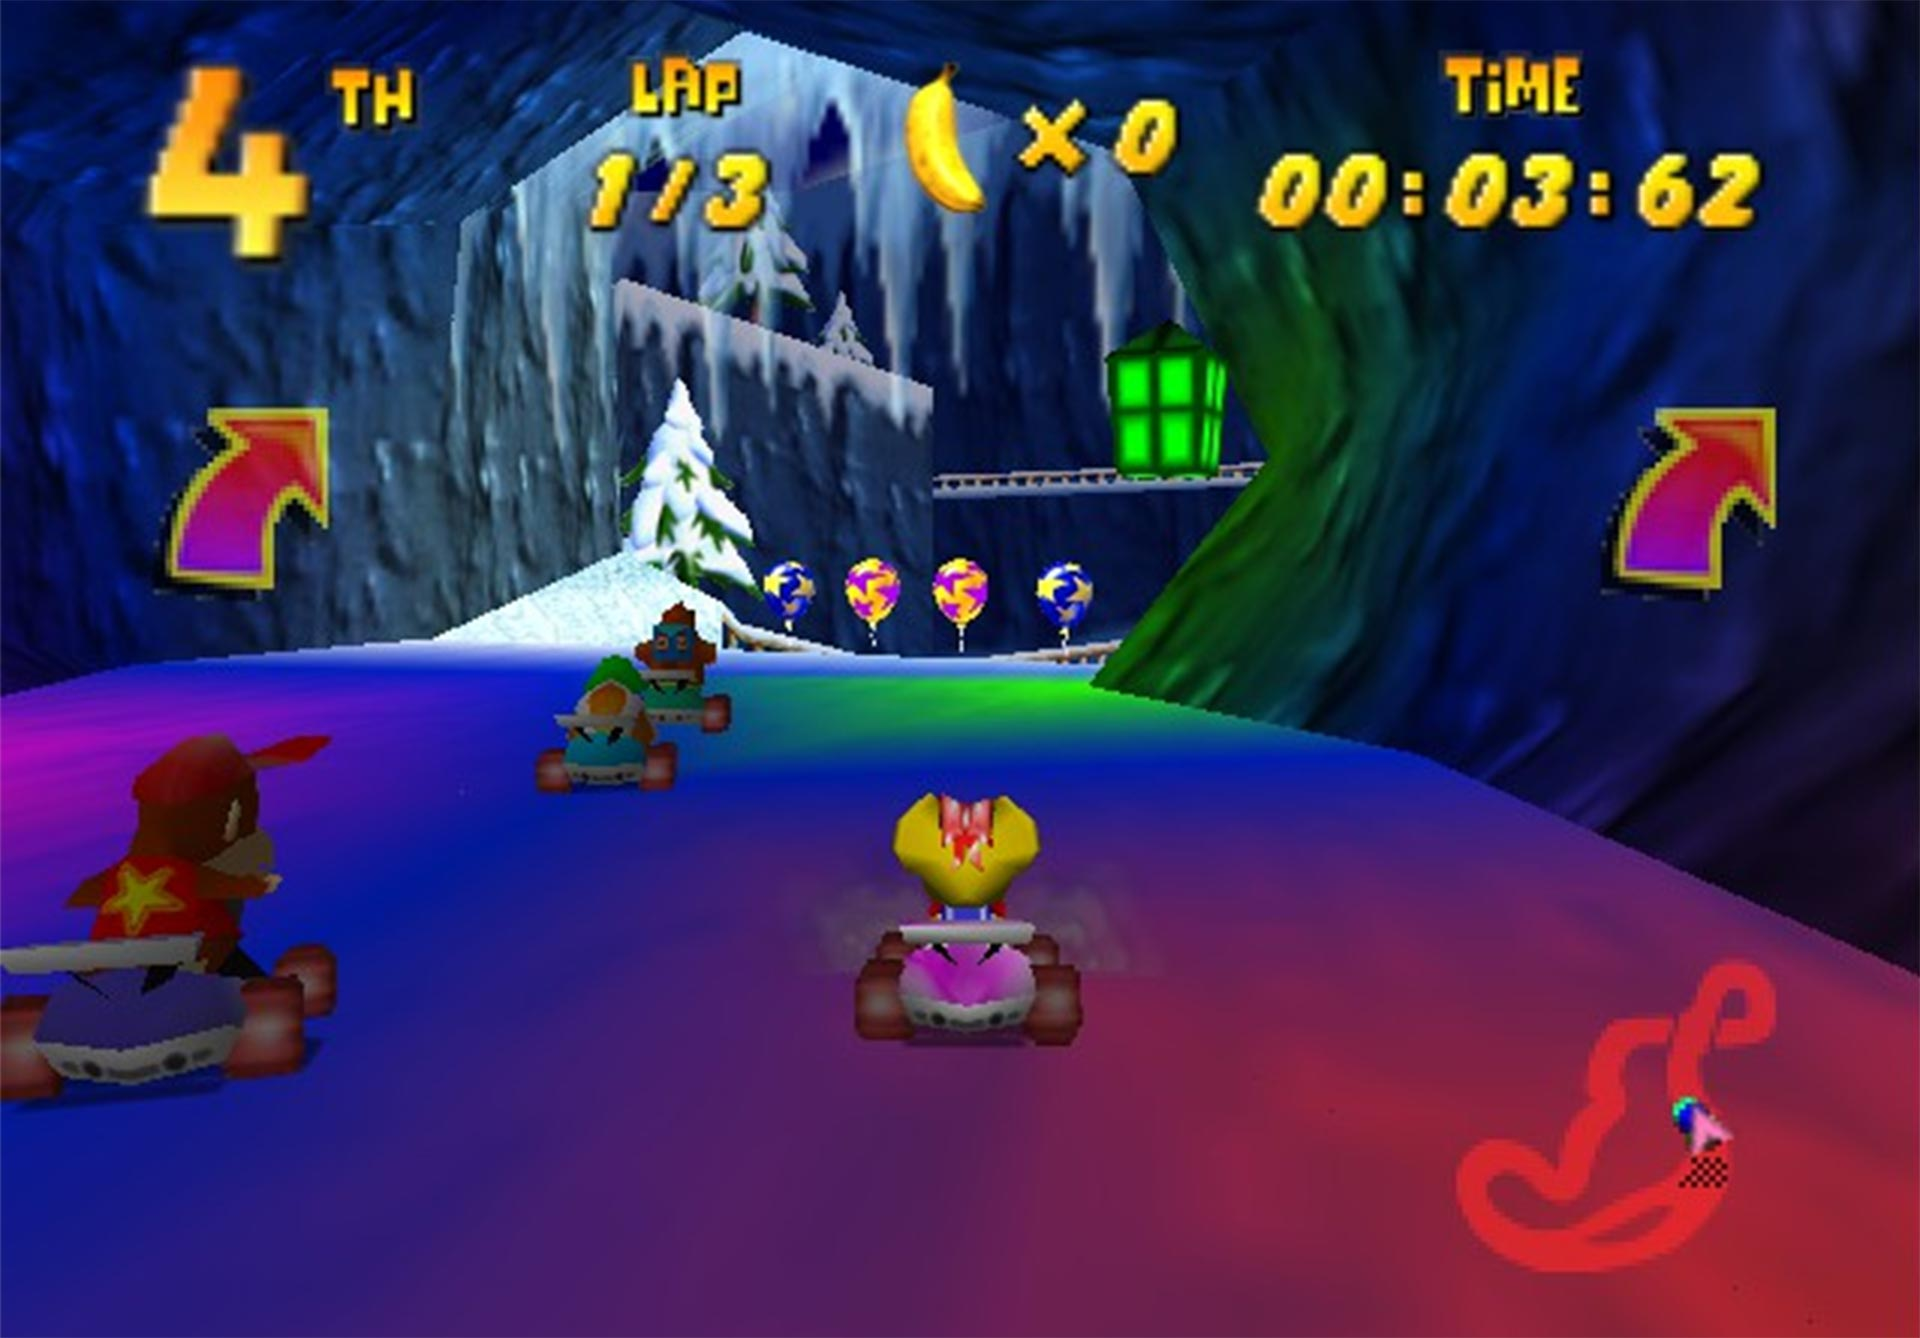 A screenshot from Diddy Kong Racing.